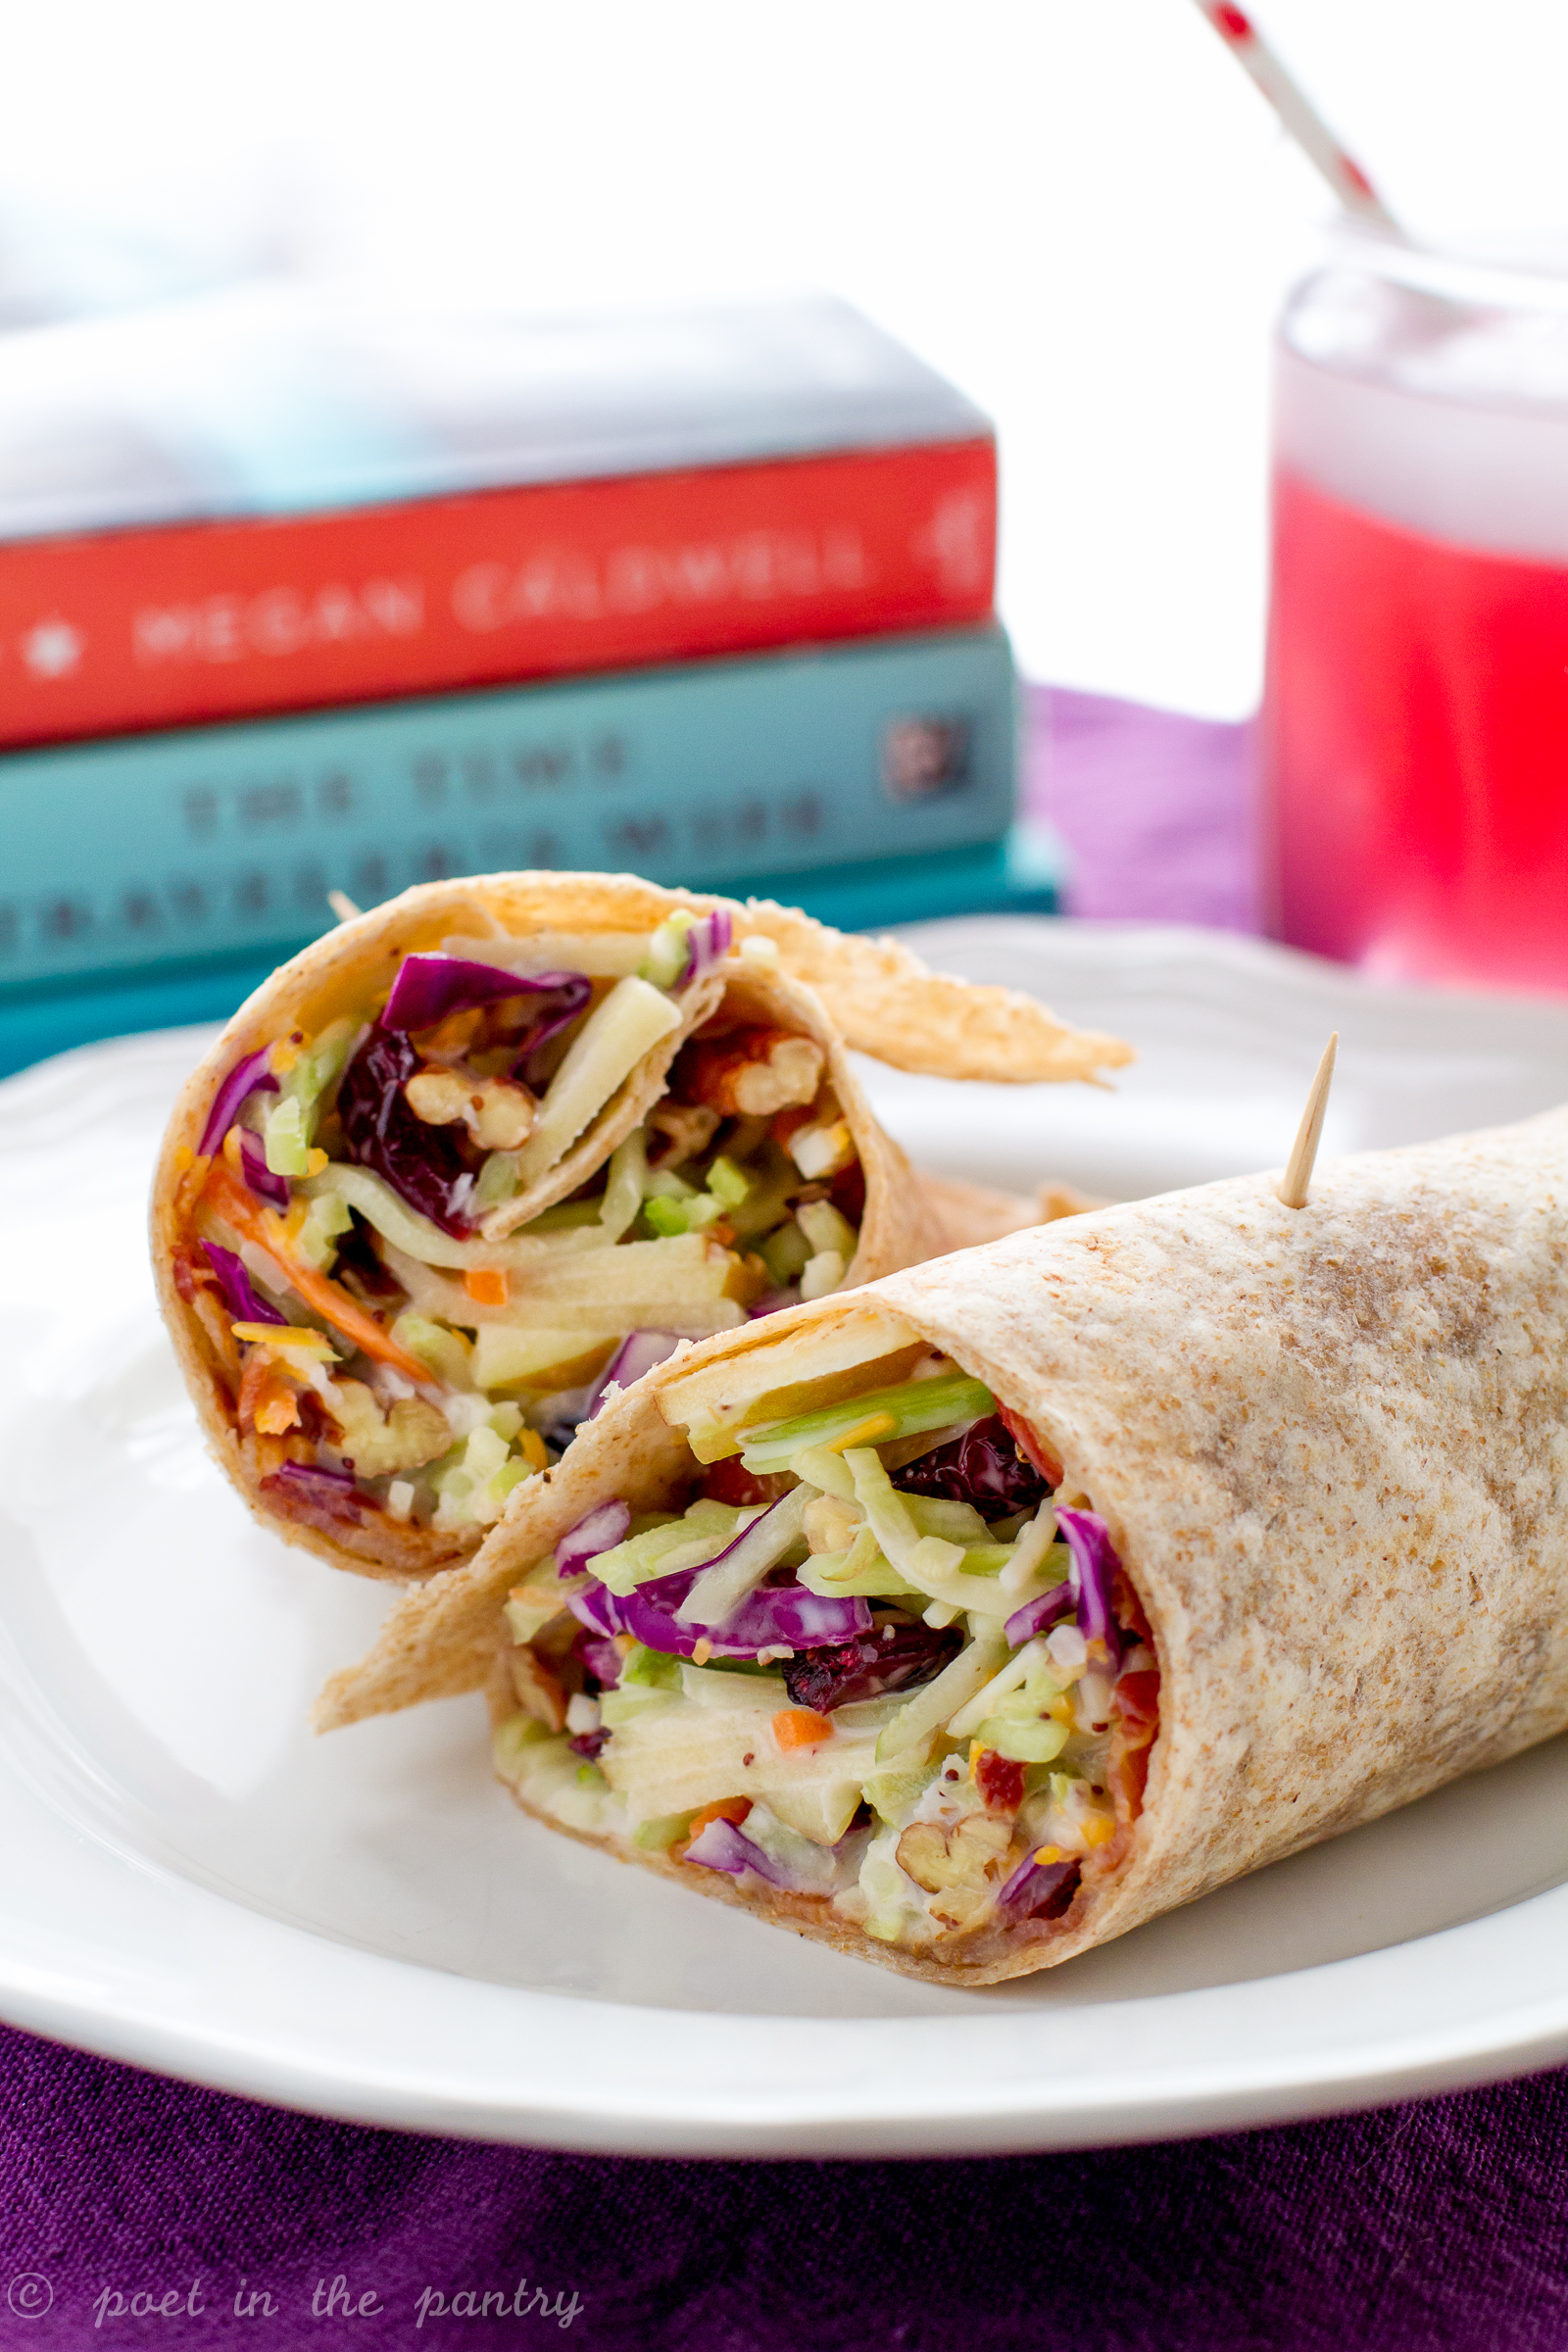 Take your broccoli salad on the go with broccoli salad wraps! Bye-bye boring lunches! - Poet in the Pantry